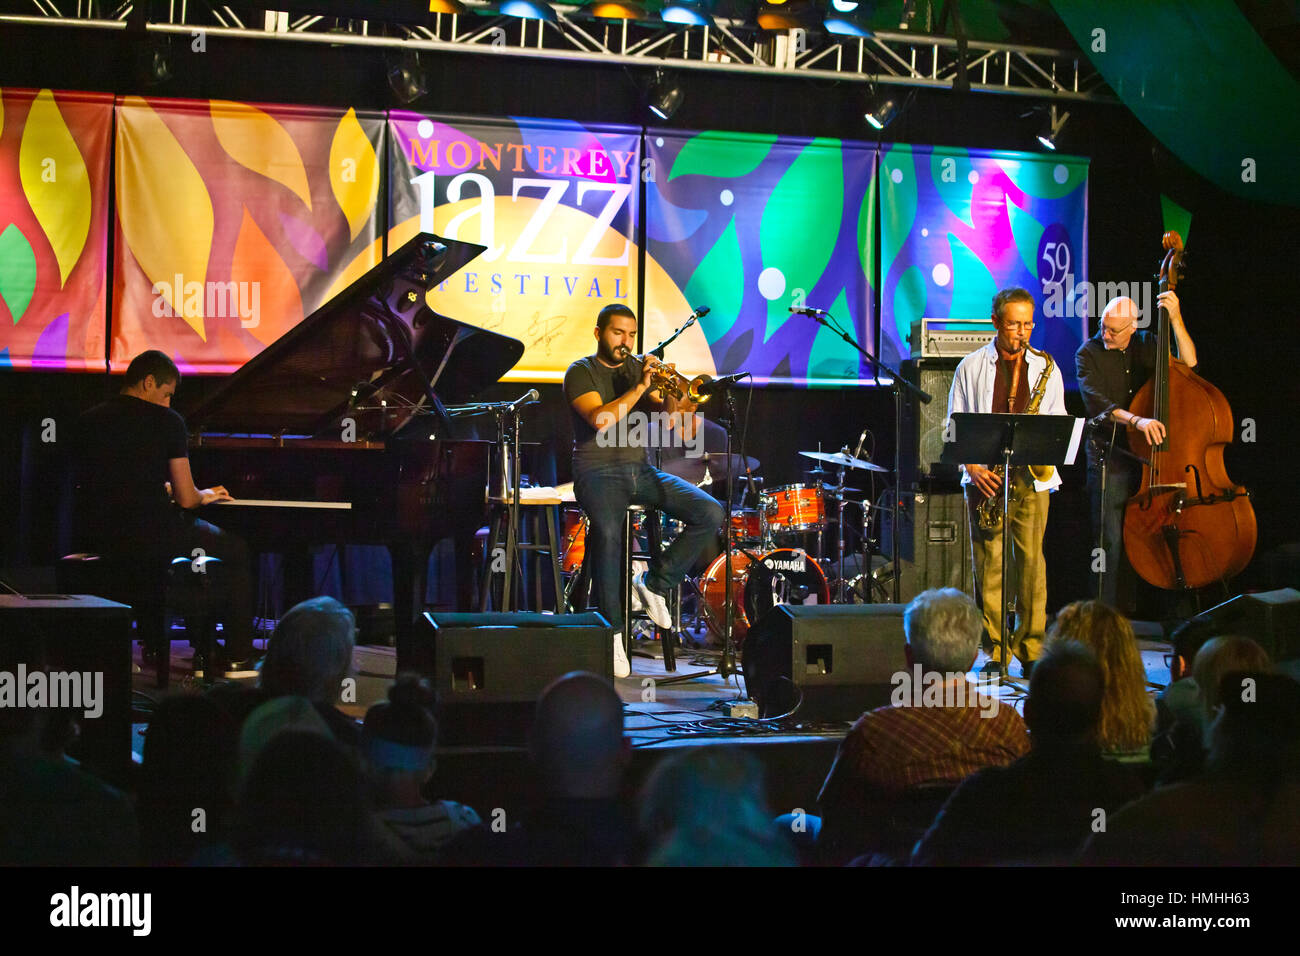 IBRAHIM MAALOUF performing at the 59th Monterey Jazz